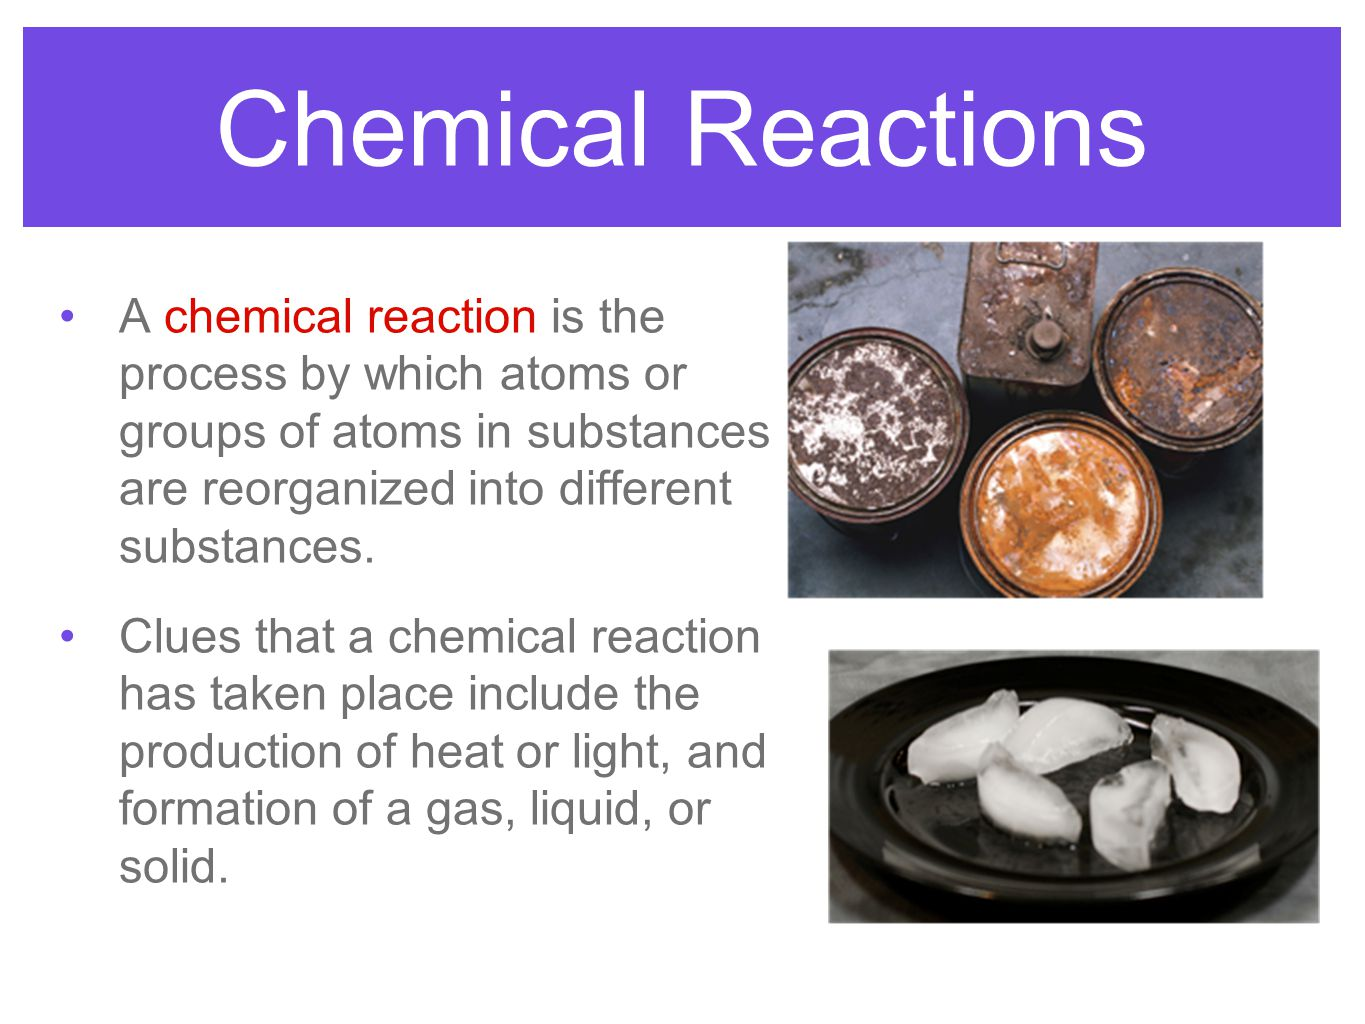 Chemical Reactions A chemical reaction is the process by which atoms or groups of atoms in substances are reorganized into different substances.